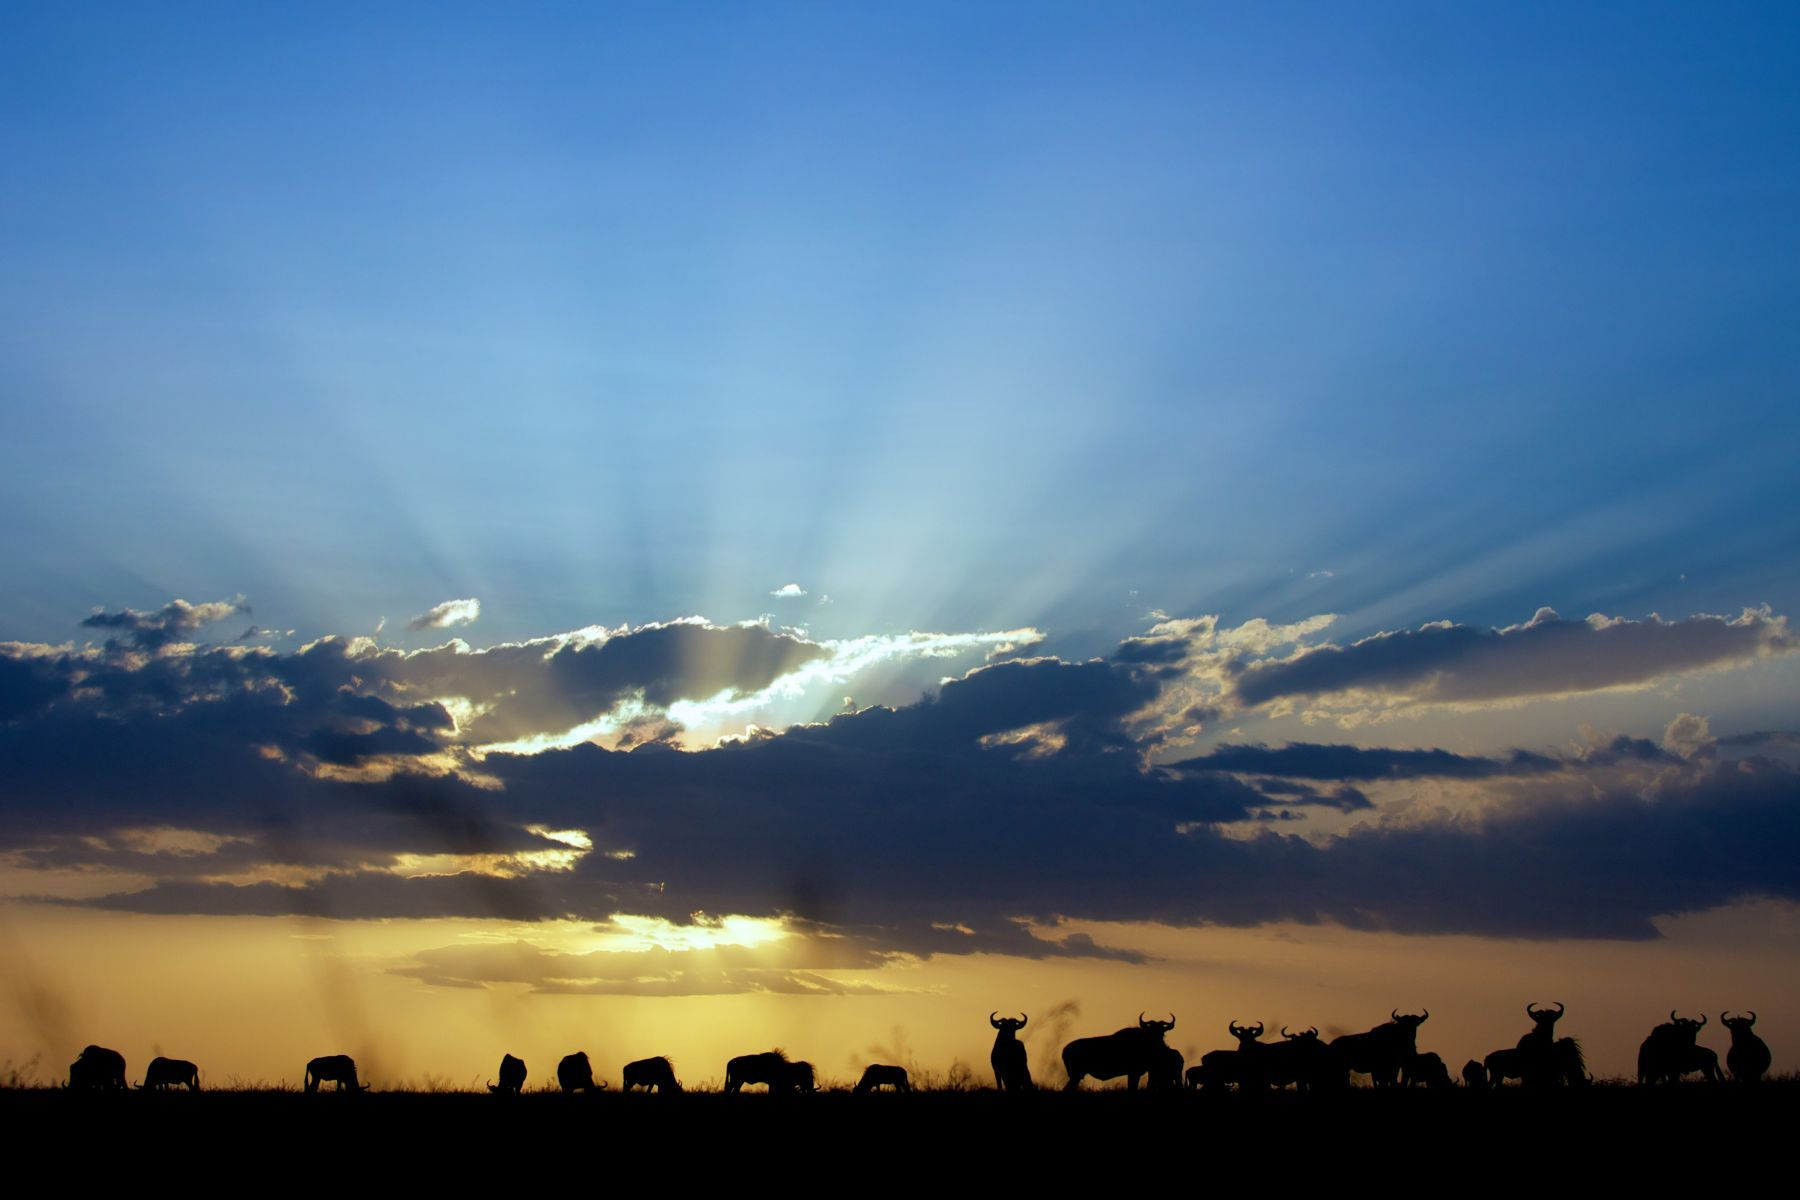 Sunset Wildebeest